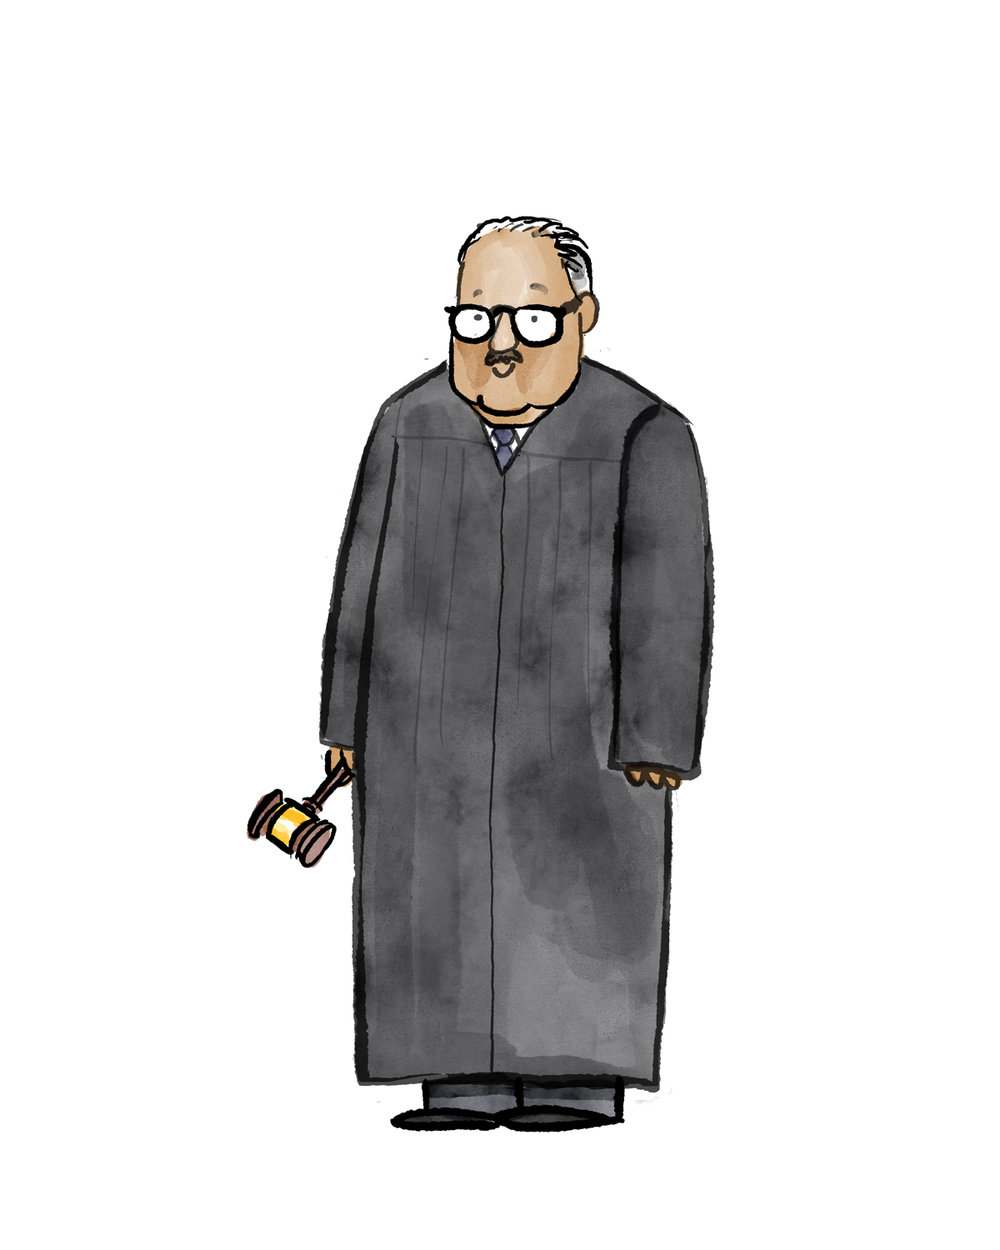 The Honorable Thurgood Marshall